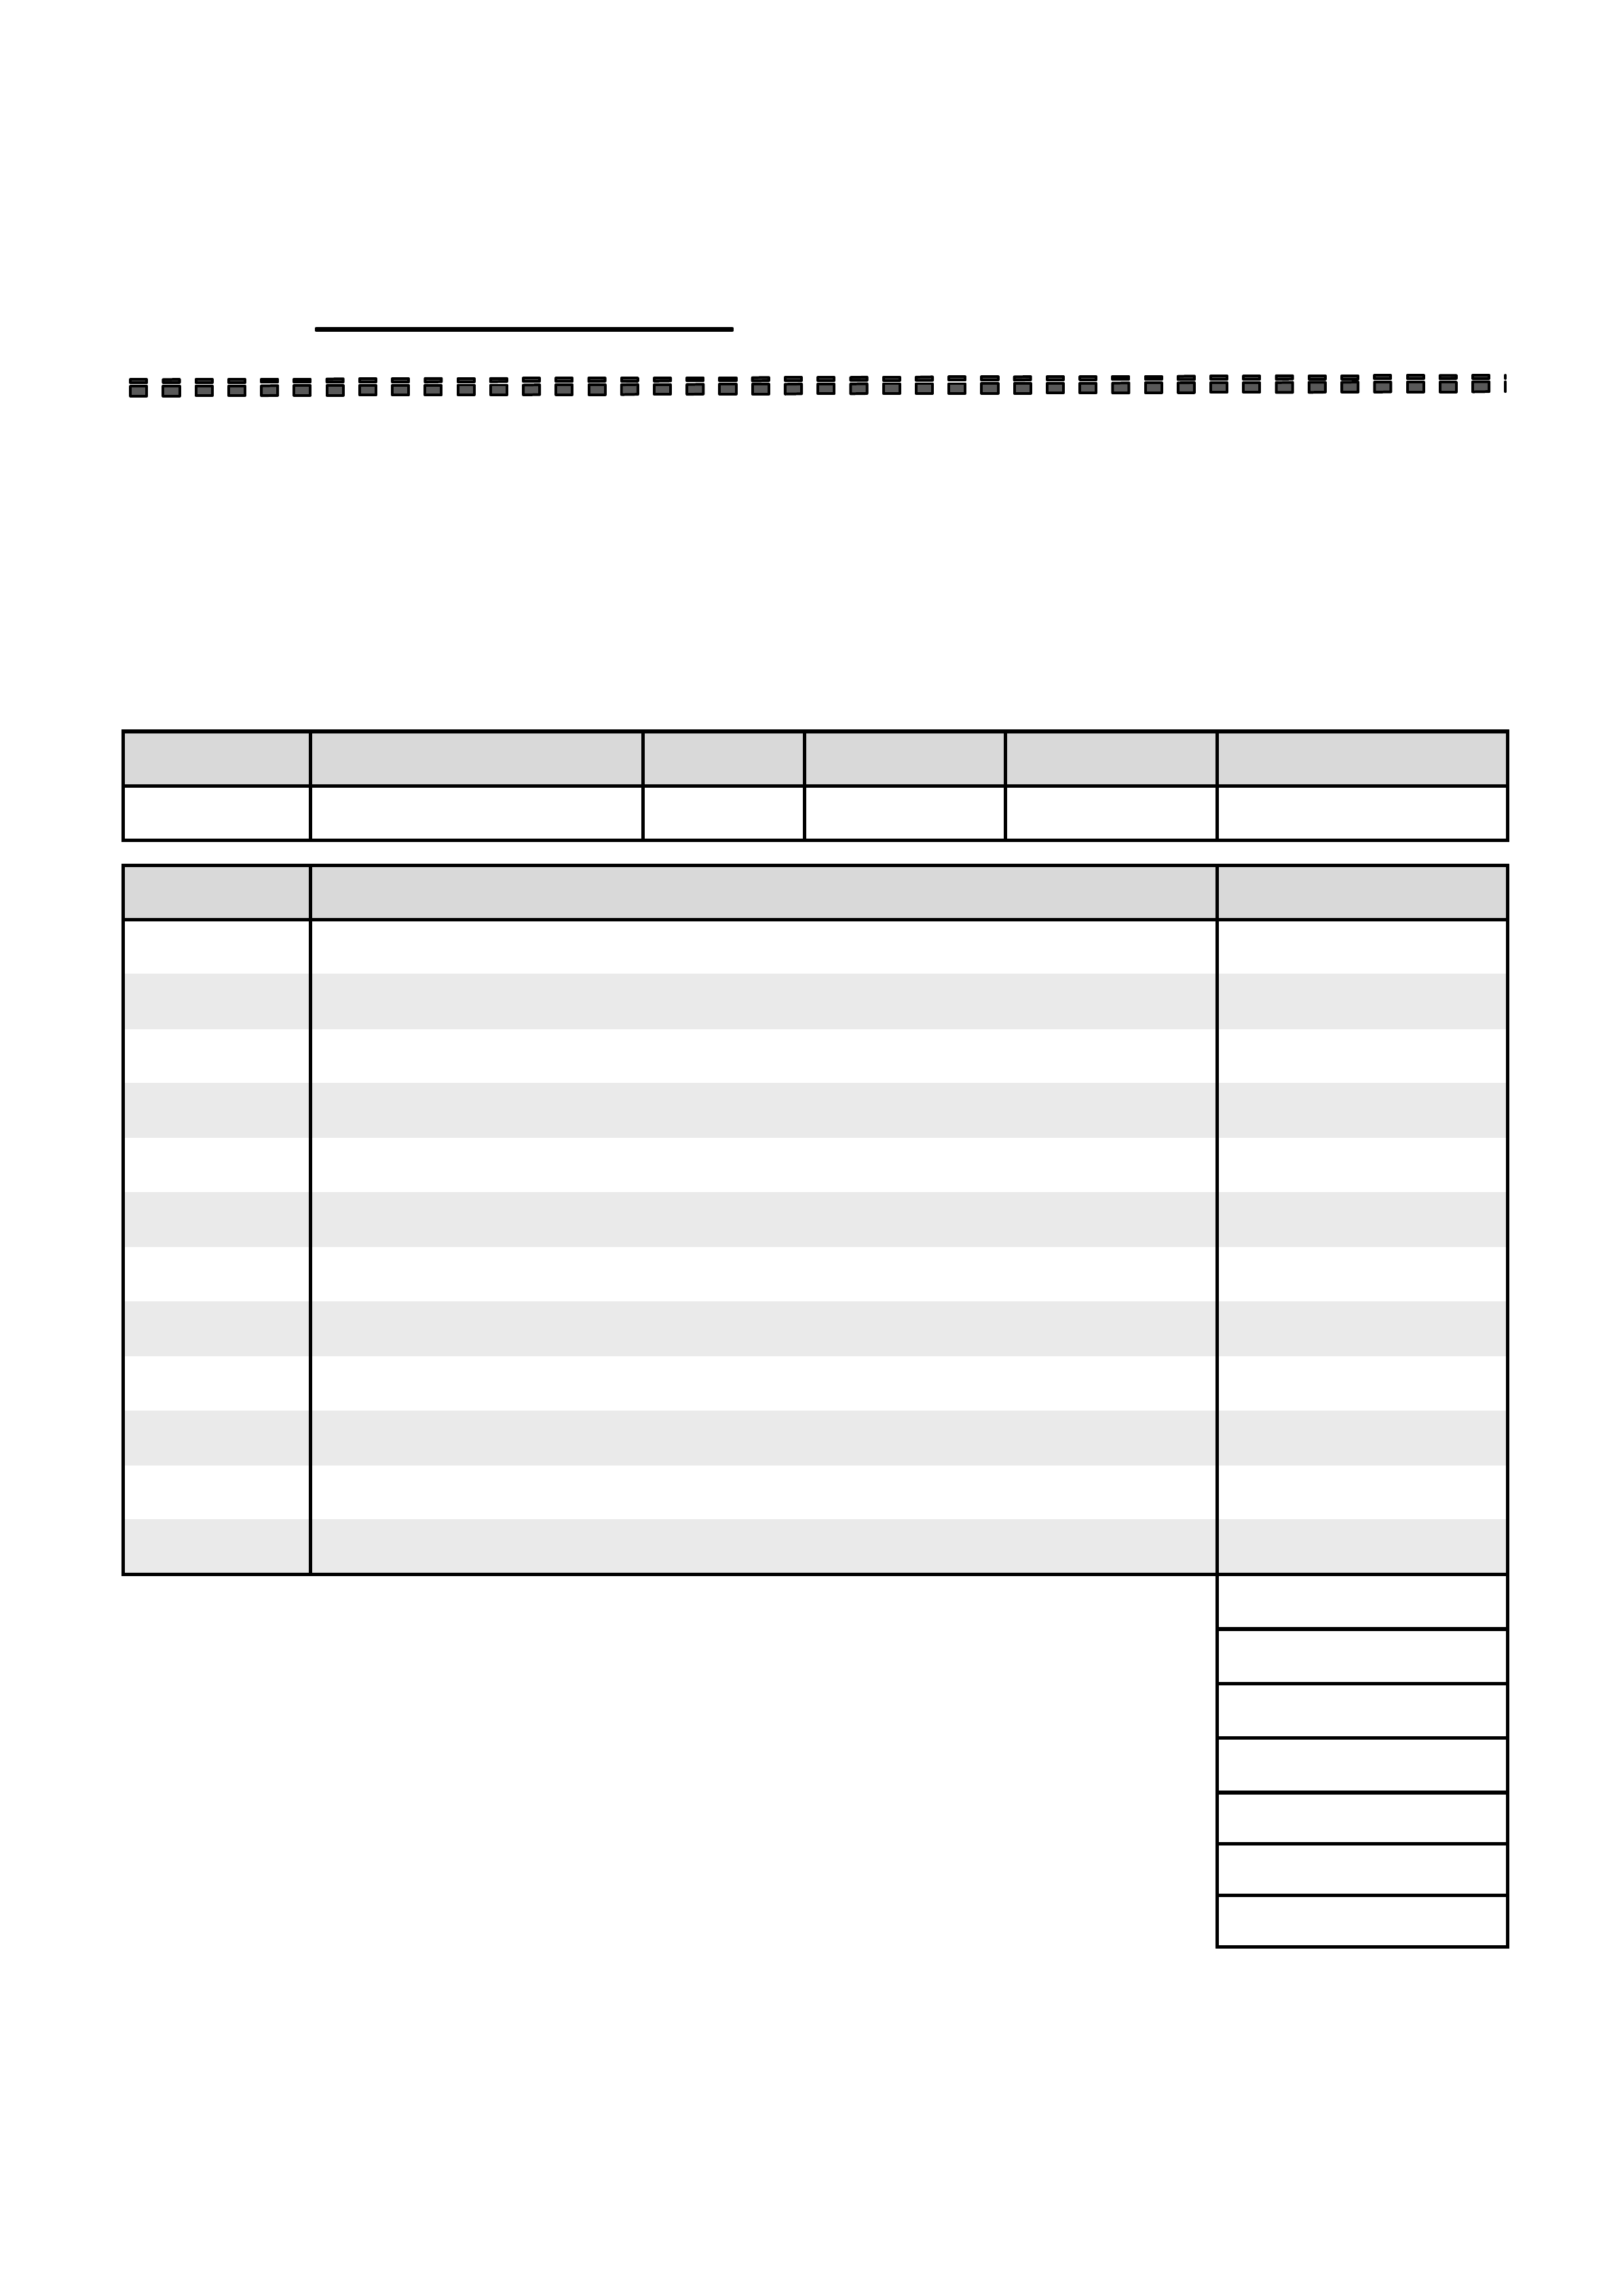 blank service invoice template free download